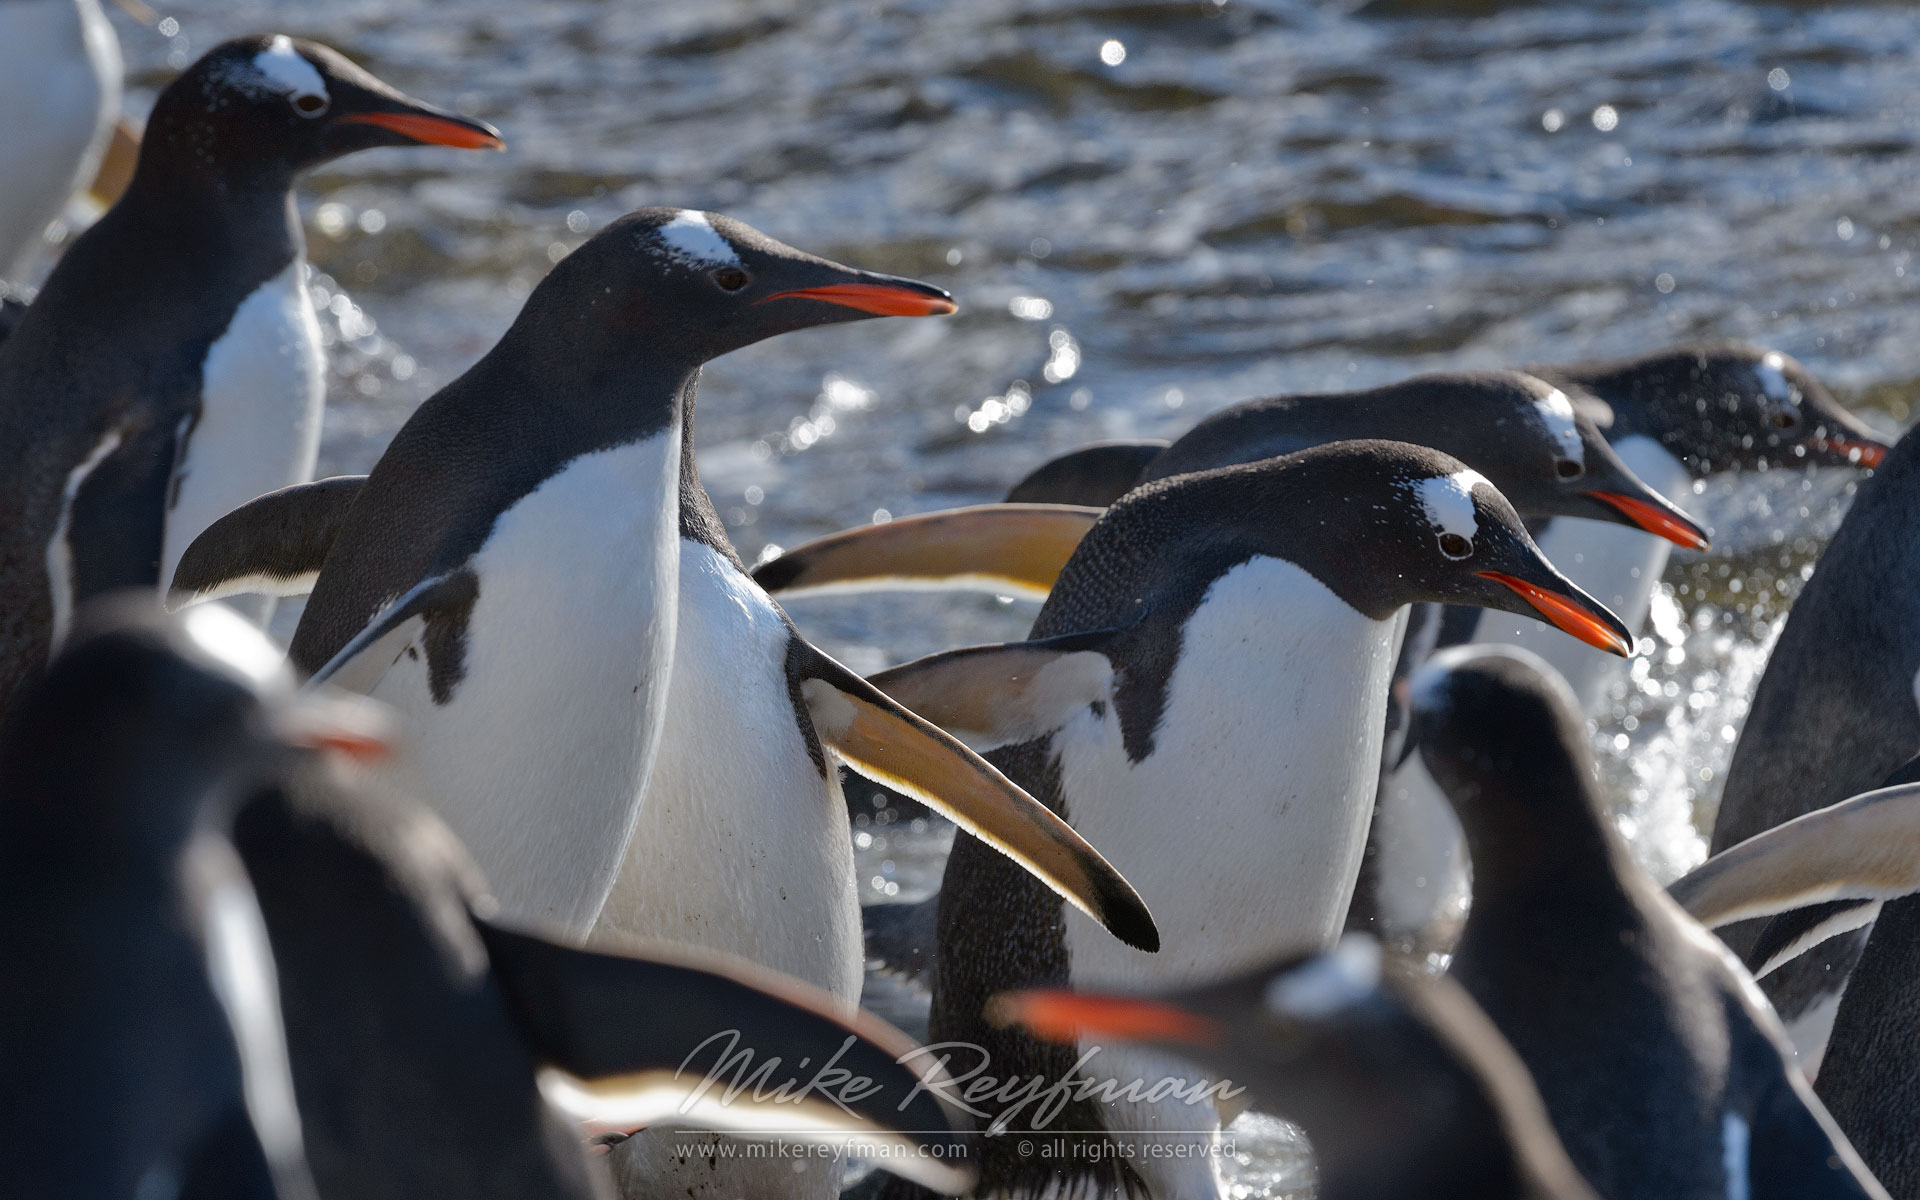 Gentoo Penguins (Pygoscelis papua). Prion Island, South Georgia, Sub-Antarctic - King-Penguins-South-Georgia-Sub-Antarctic - Mike Reyfman Photography